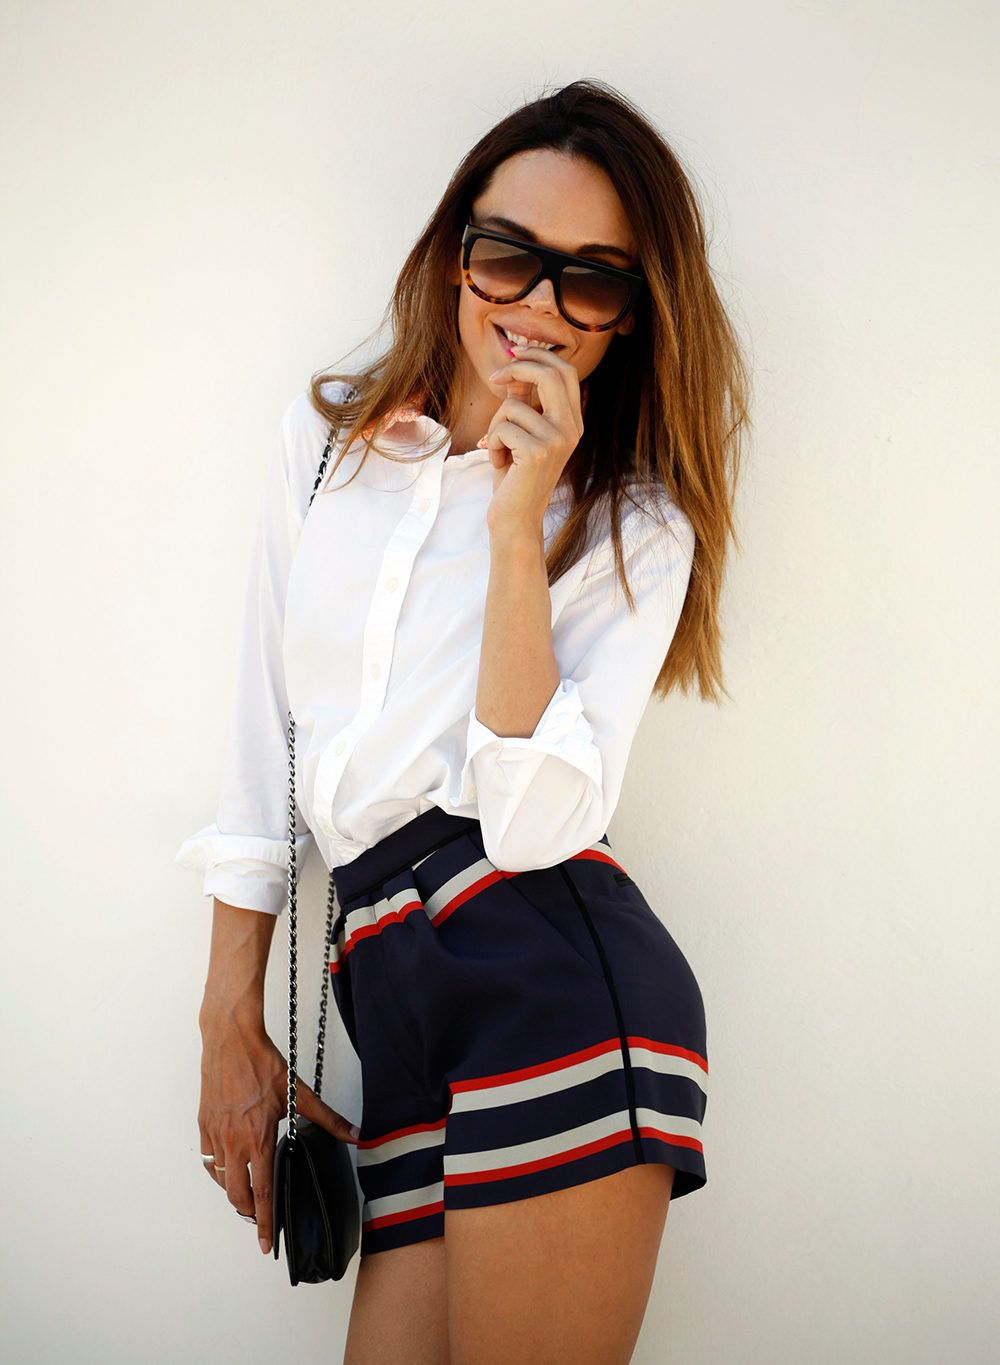 Under The Sun  #Shirts & Blouses #Striped #Shorts #Shoulder